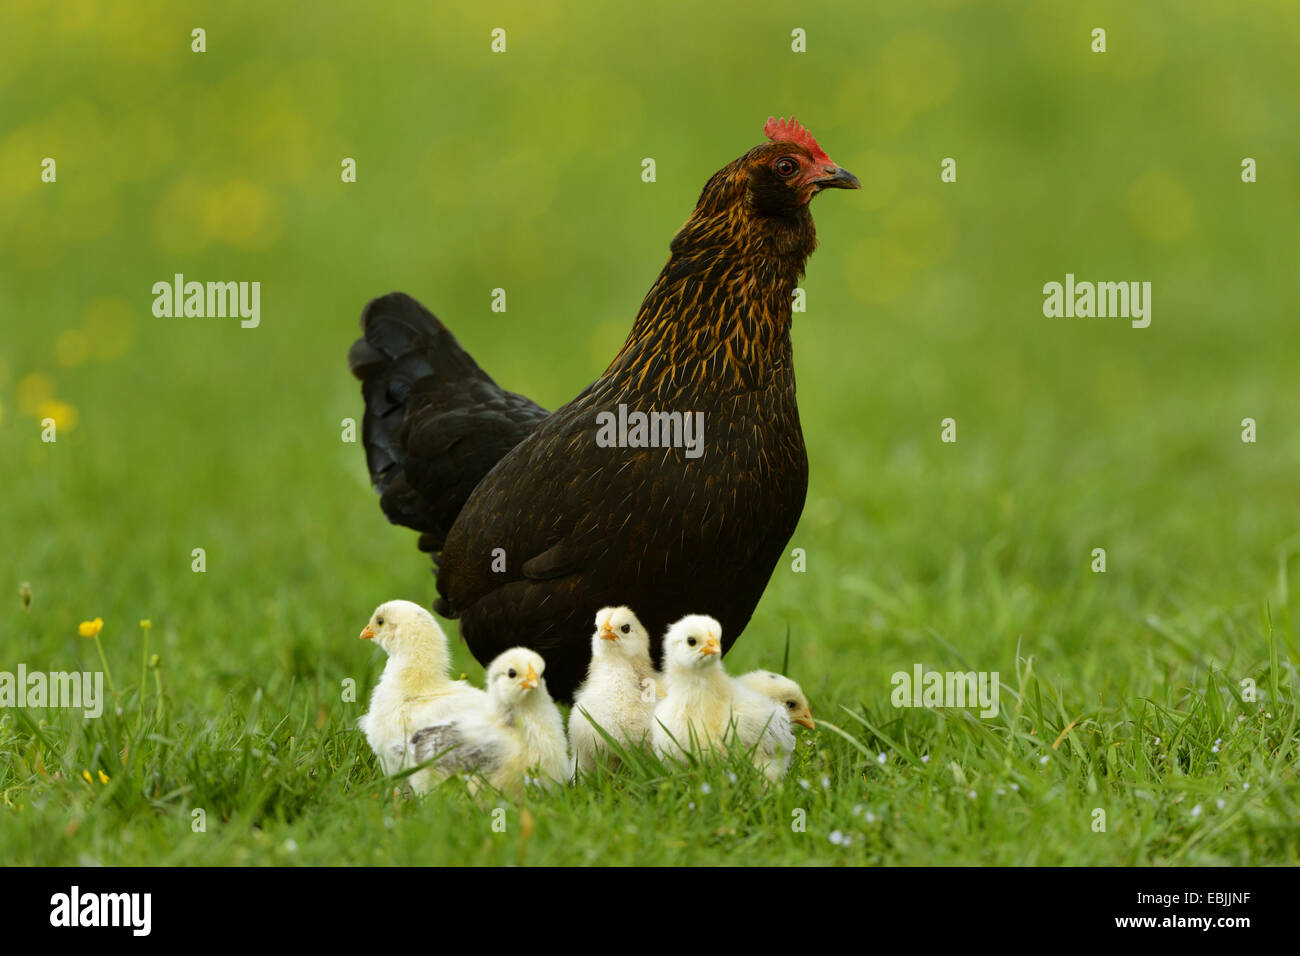 domestic fowl (Gallus gallus f. domestica), hen with one week old chickens in a meadow, Germany - Stock Image